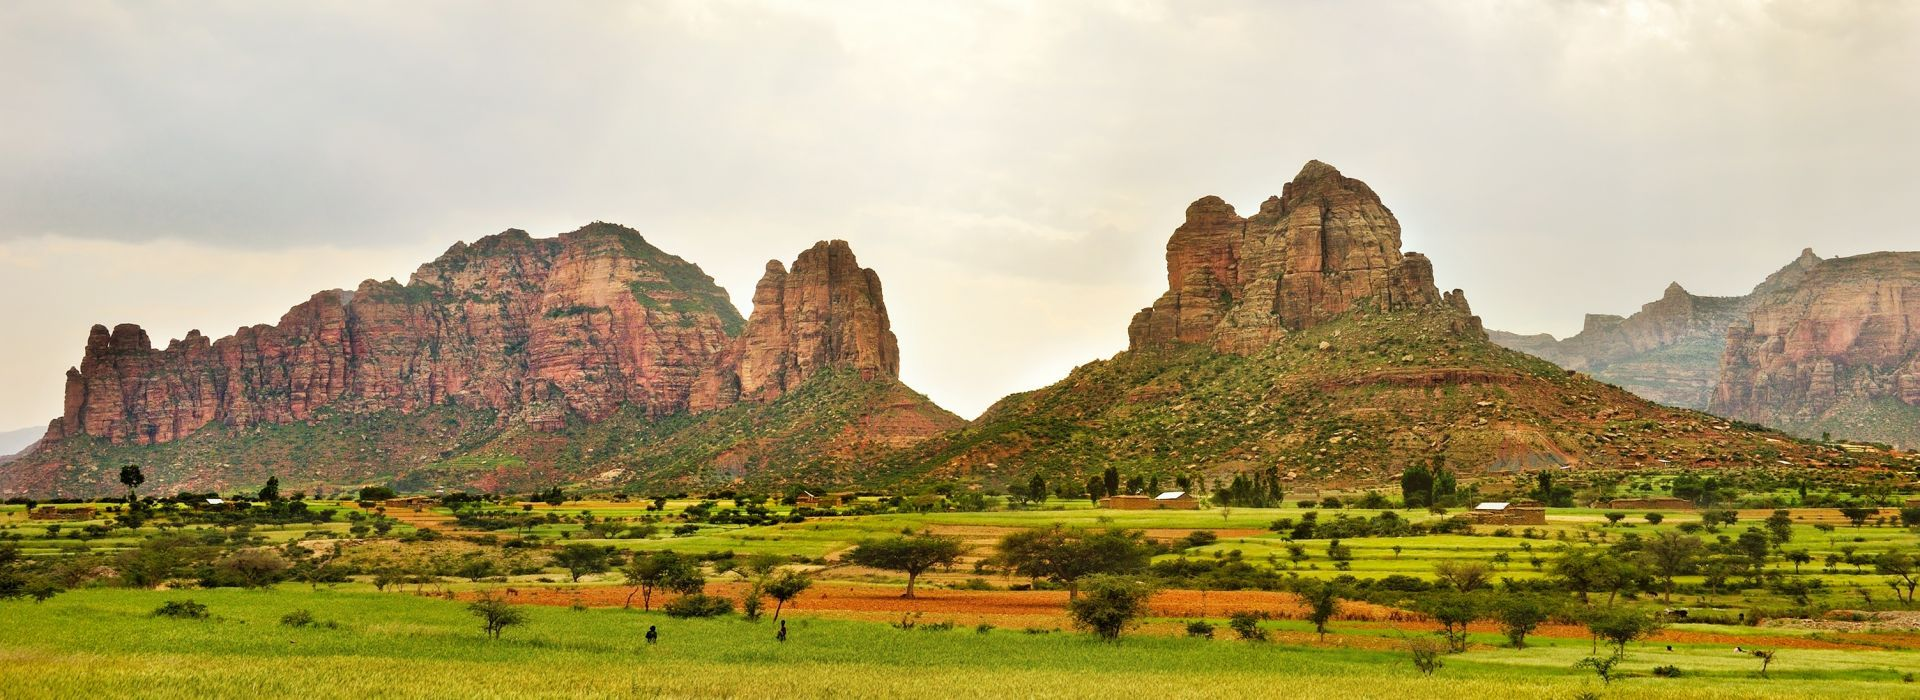 Wildlife, landscapes and nature Tours in Ethiopia